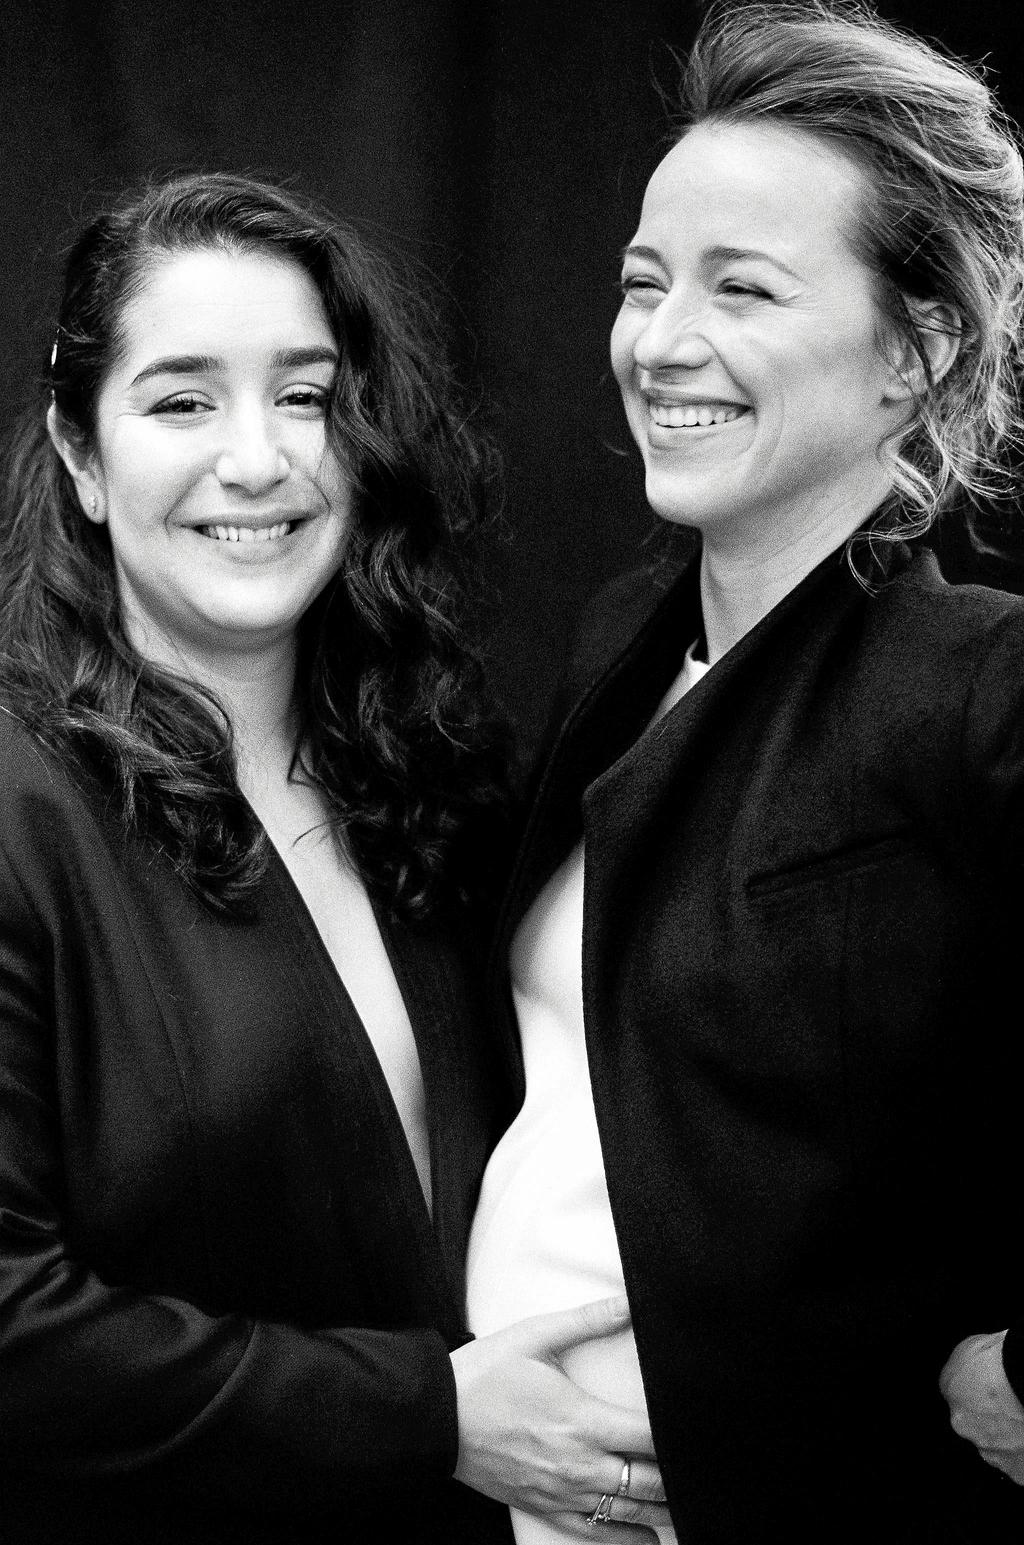 L'humoriste Mariana Mazza et l'actrice et productrice Karine Vanasse